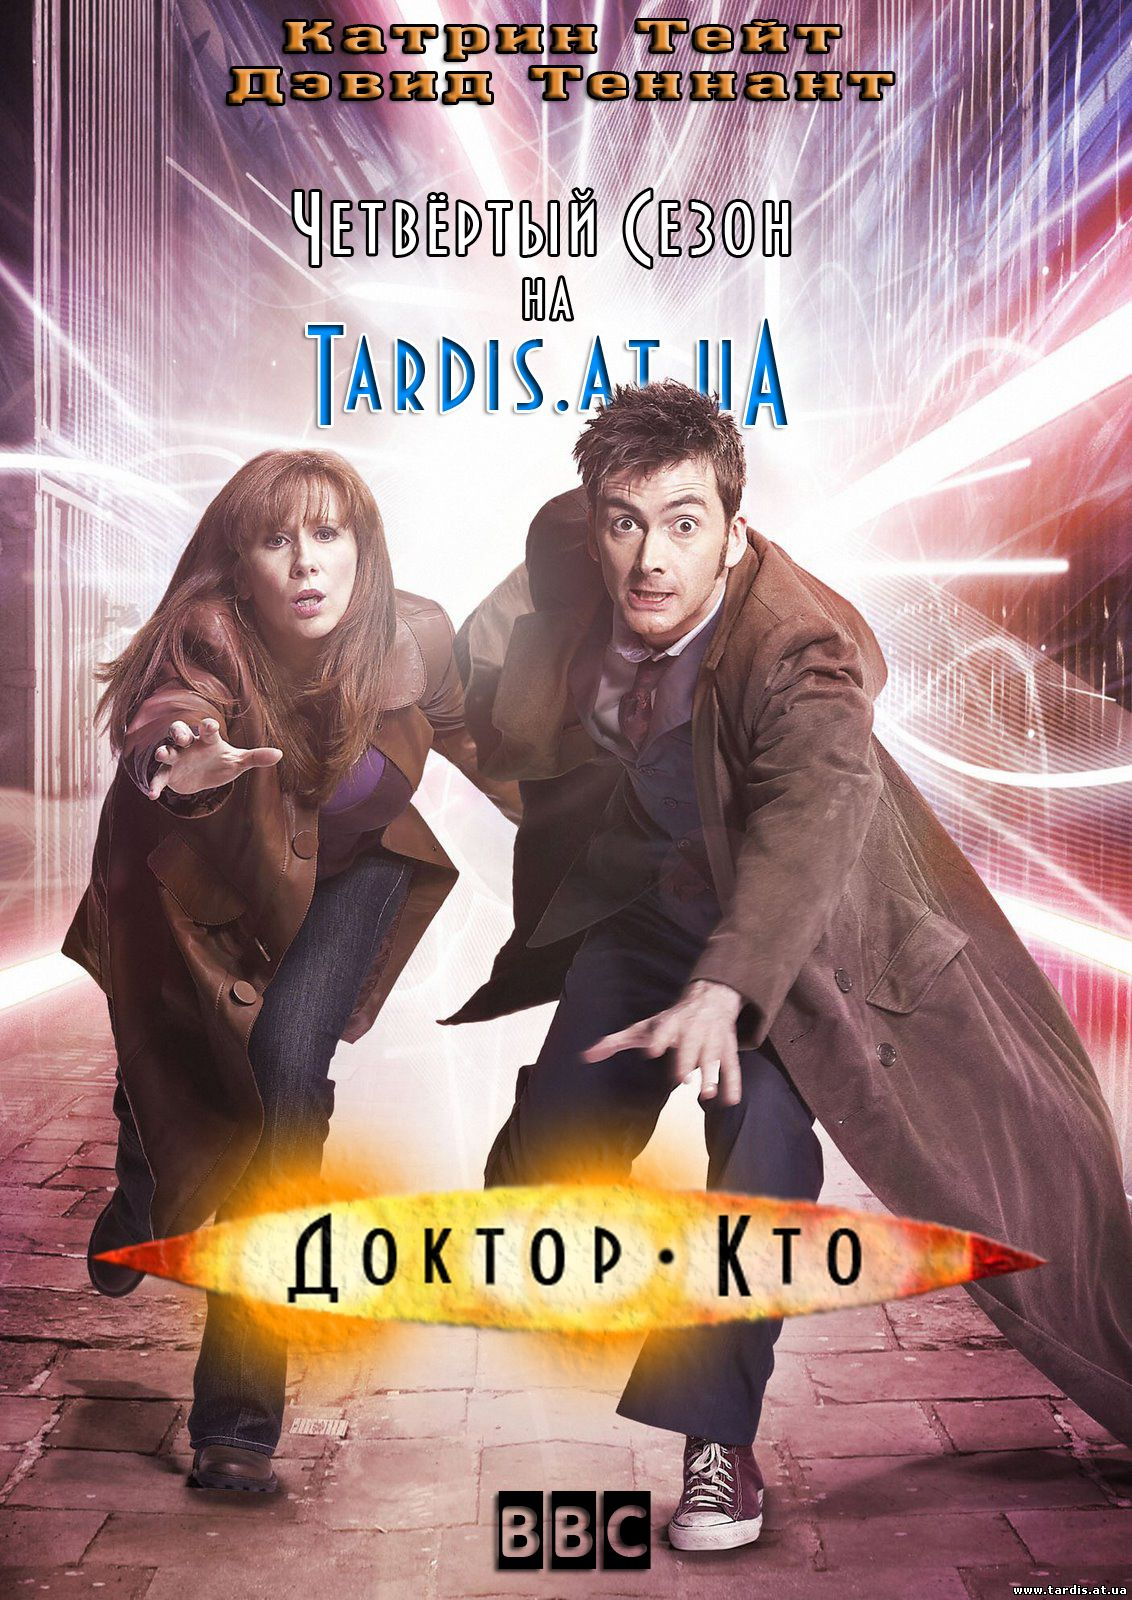 http://tardis.at.ua/images/series4.jpg